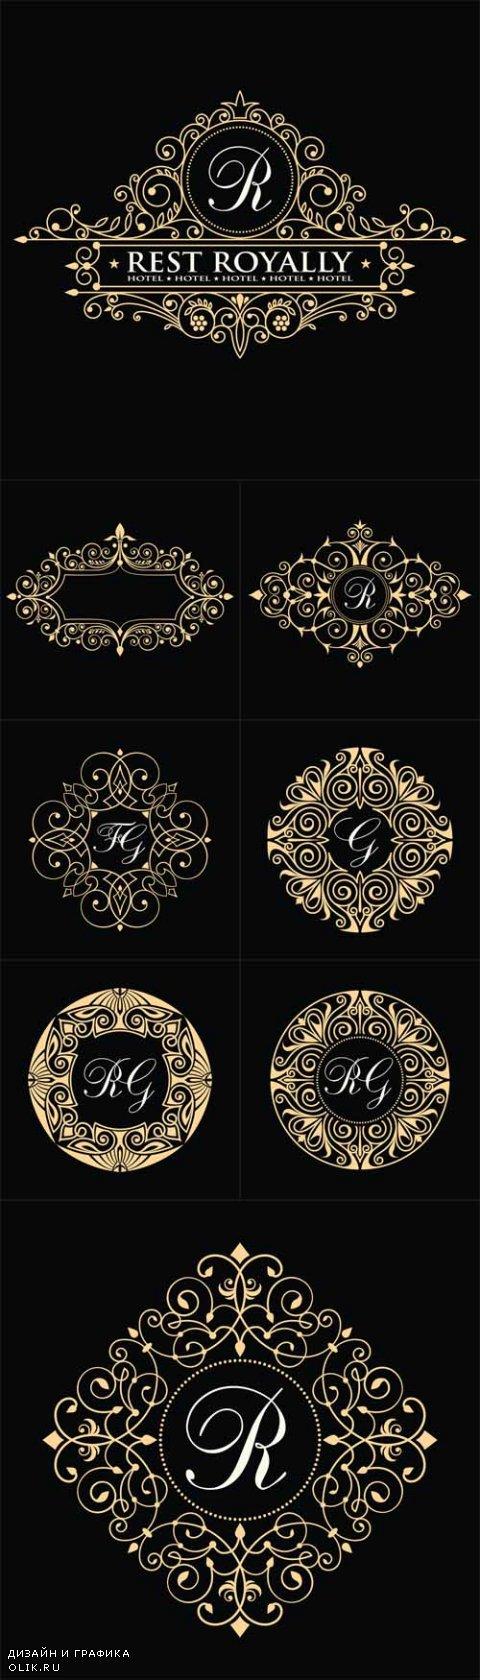 Vector Vintage luxury emblem. Business sign, monogram identity for Restaurant, Hotel, Cafe